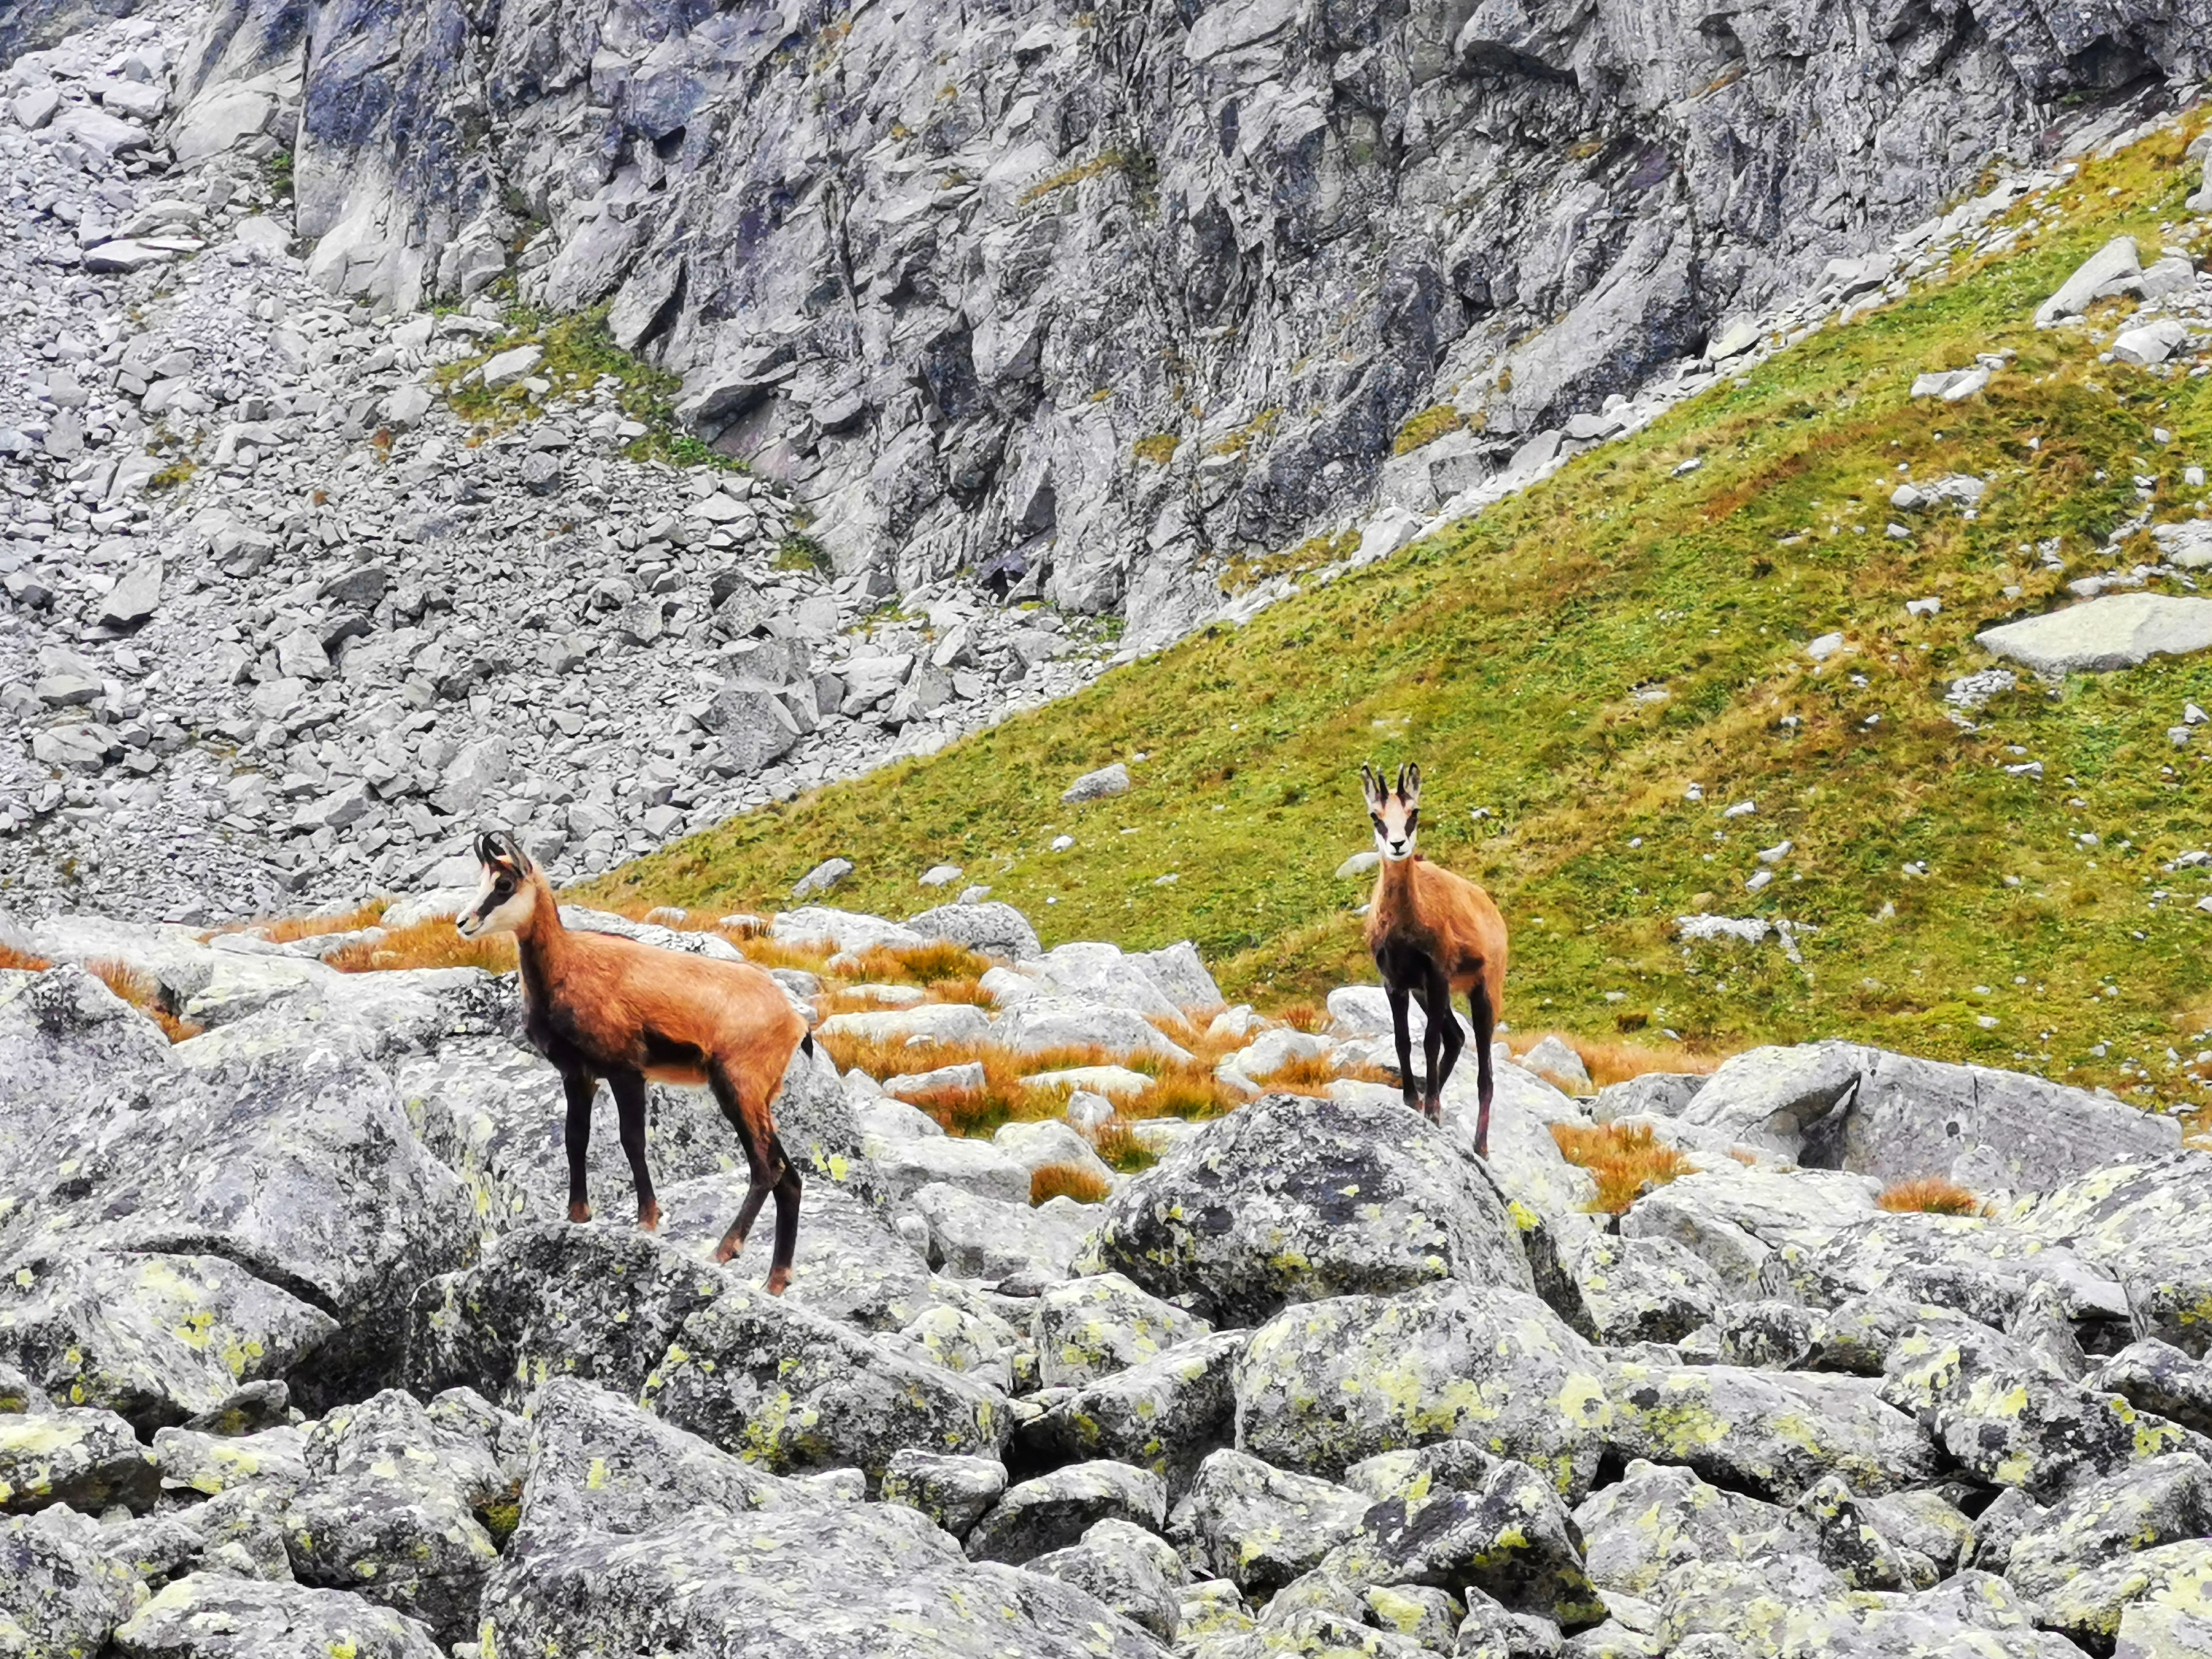 As of 2006, the Slovak Tatra National Park was home to 371 chamois, of which 72 were lambs, and the Polish Tatra National Park was home to 117 chamois, of which 27 were lambs. As of 2010, a population recovered to 841 chamois, of which 74 were lambs, 699 (57 lambs) in Slovakia and 142 (17 lambs) in Poland, which is near the peak of 1964. The highest ever population was recorded in 2018, when 1,431 individuals were counted in Tatras.